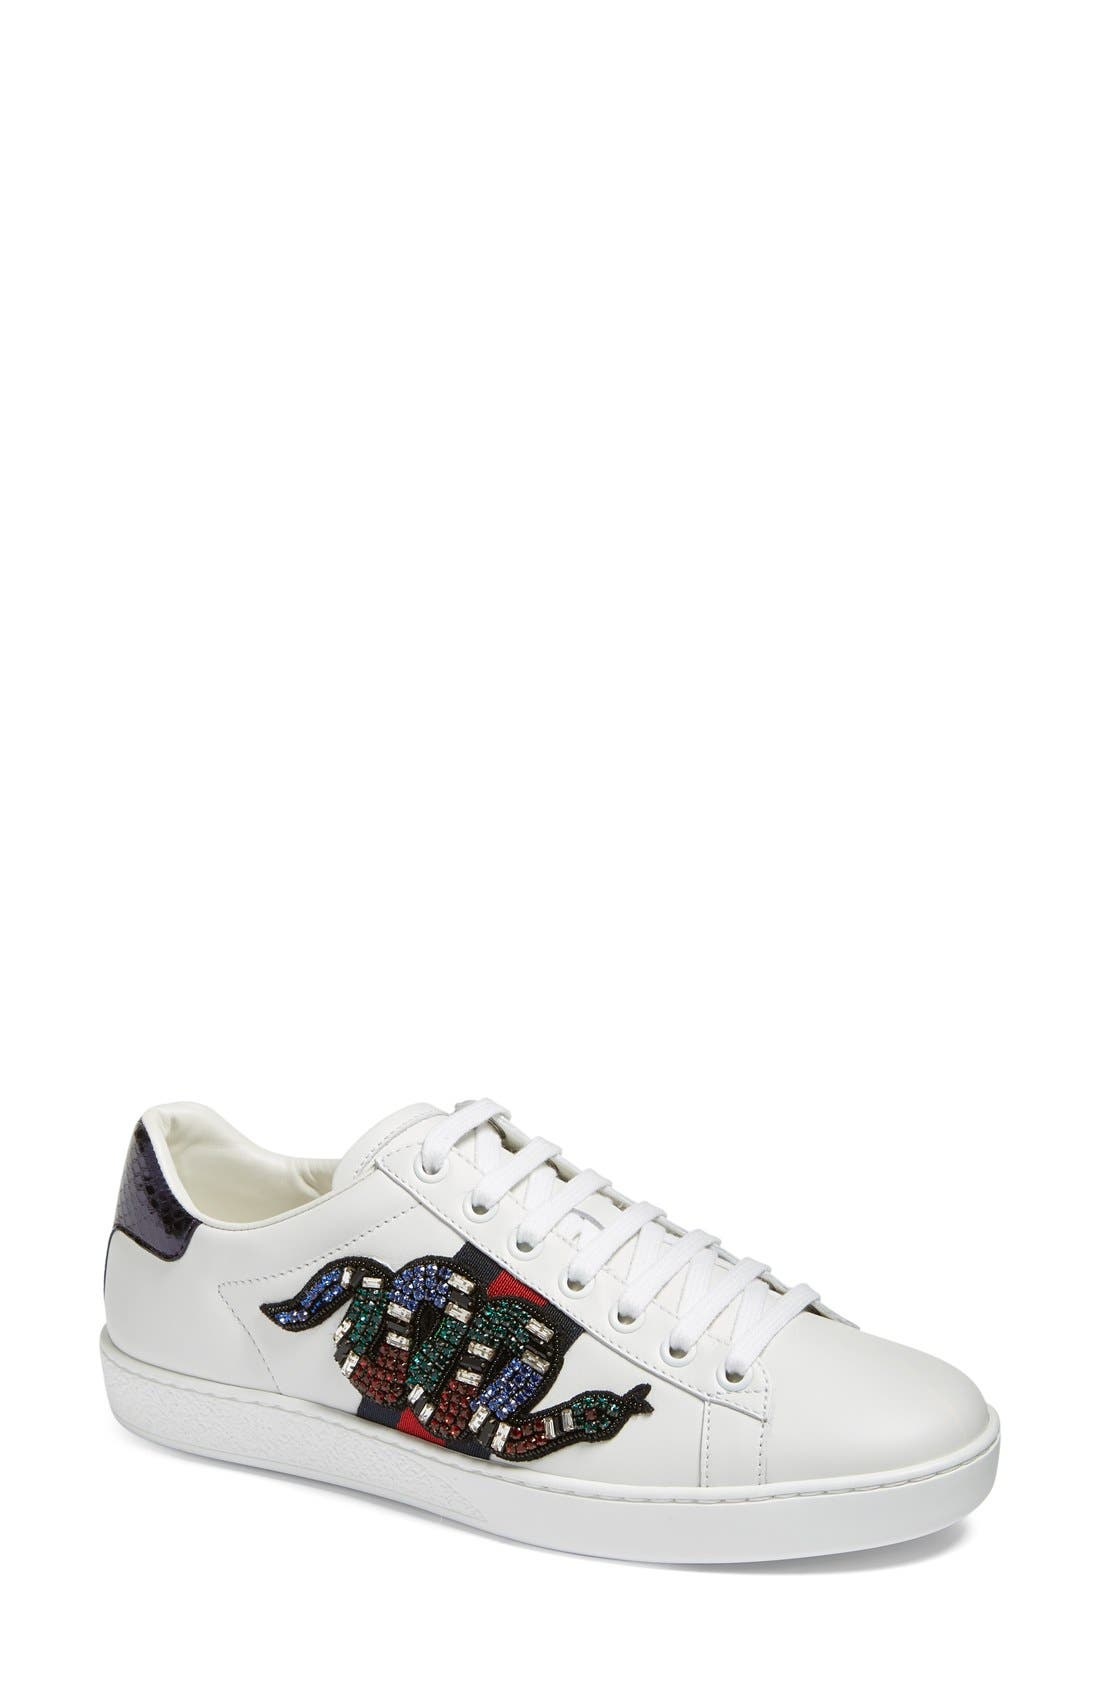 gucci shoes black snake. gucci new age snake embellished sneaker (women) shoes black